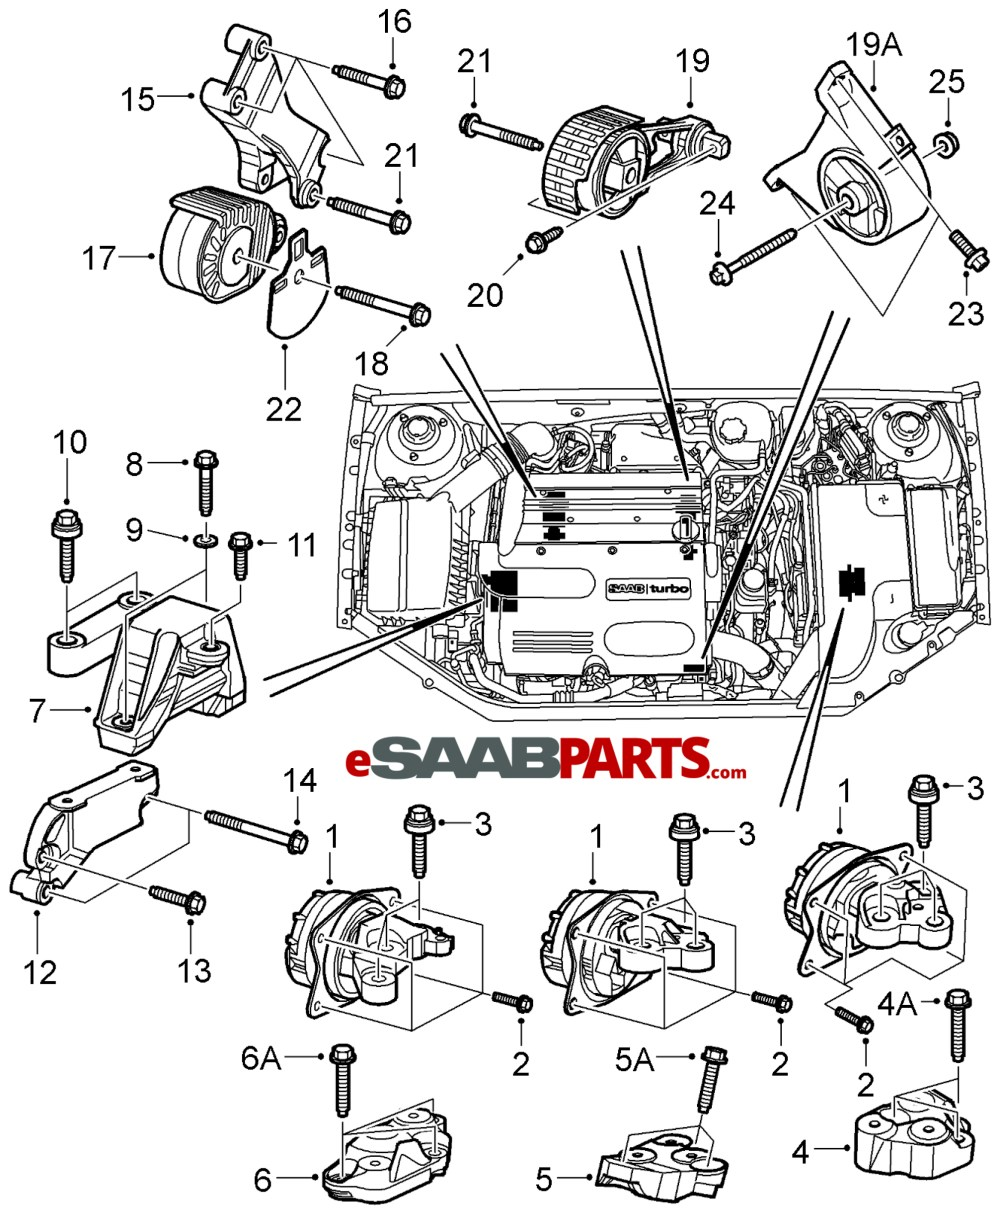 medium resolution of esaabparts com saab 9 3 9440 engine parts engine mounts engine transmission mounts b207